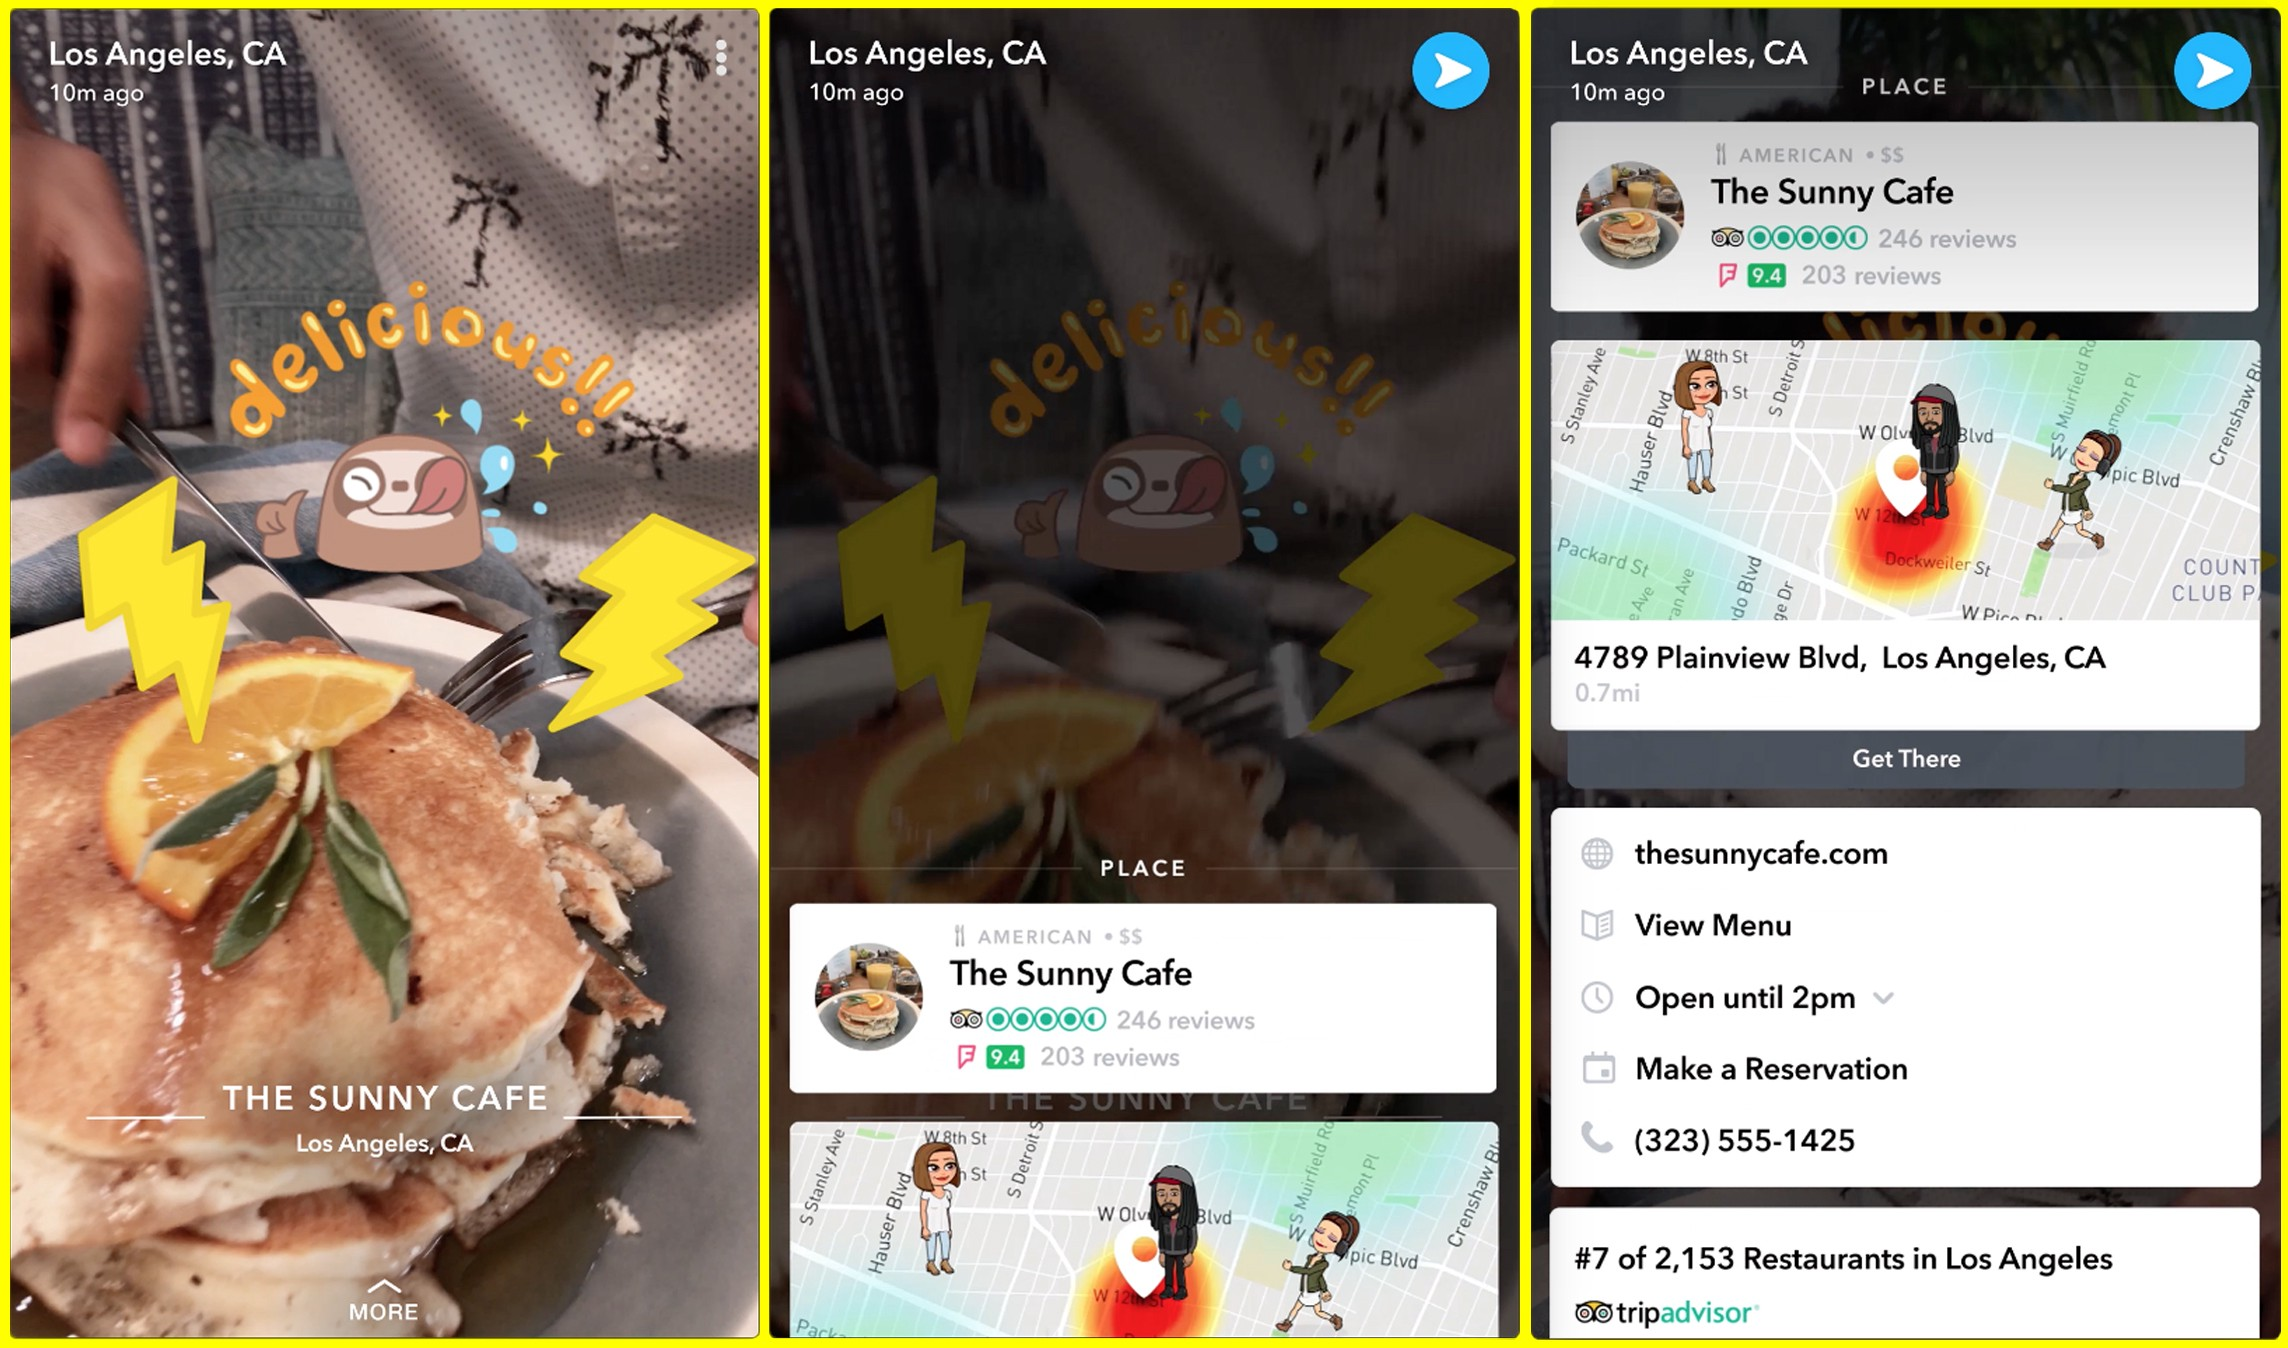 Oh, Snap! More Foursquare in your Snapchat - Foursquare - Medium